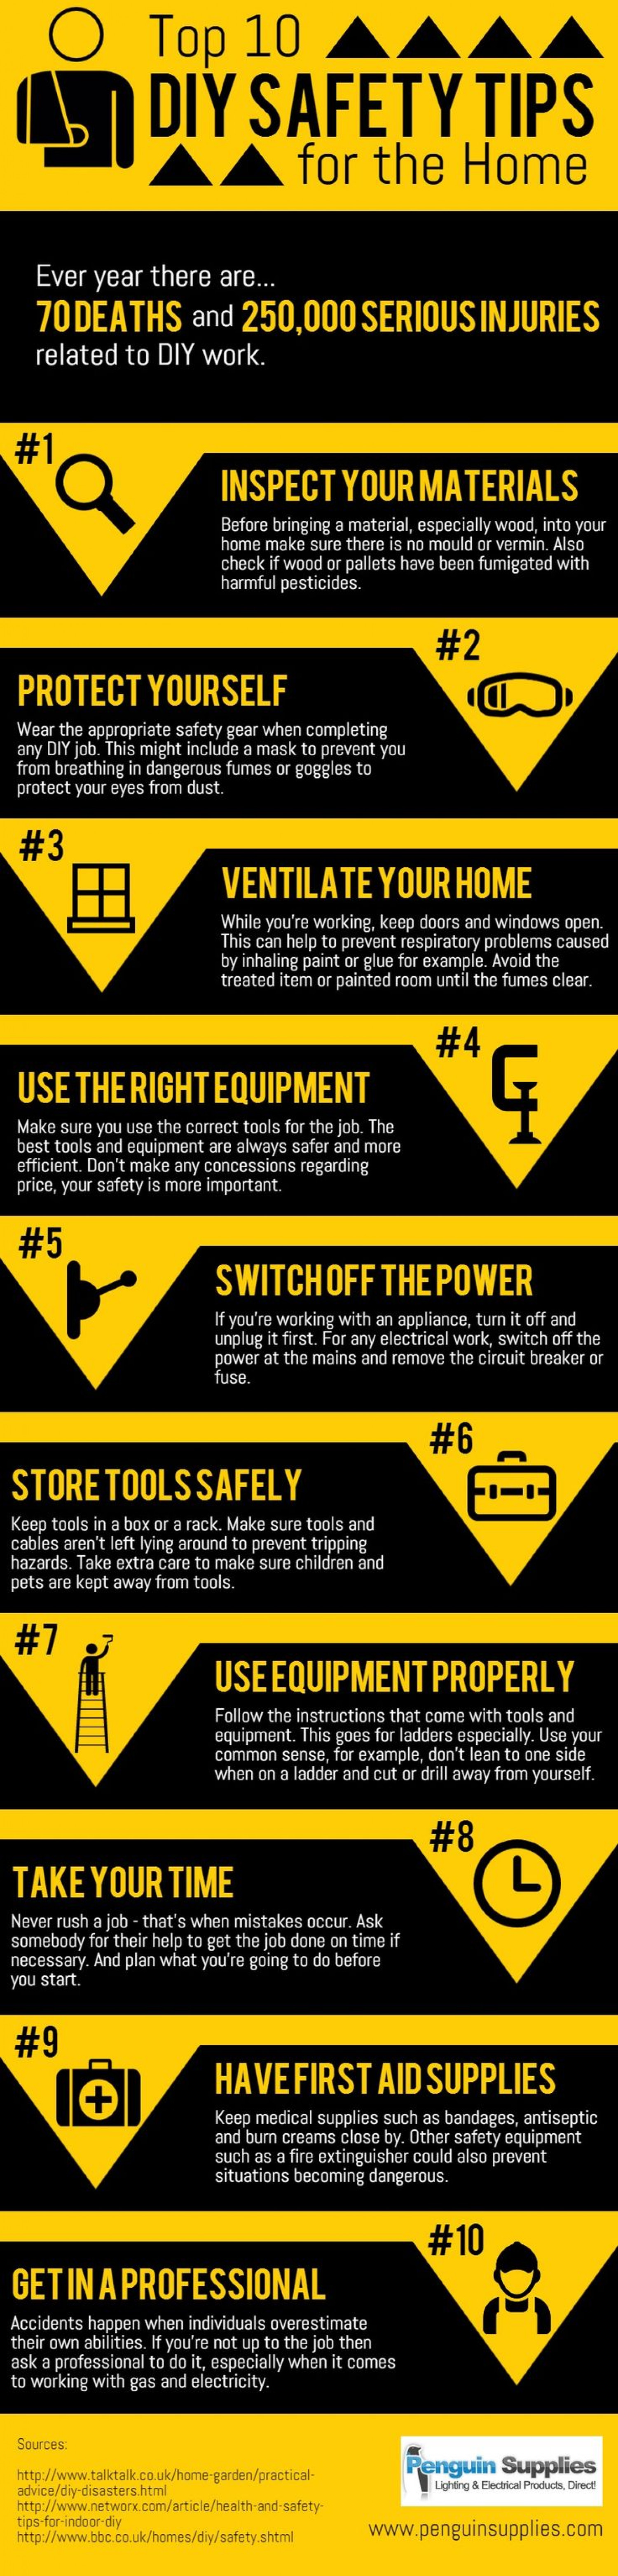 Top 10 DIY Safety Tips Infographic